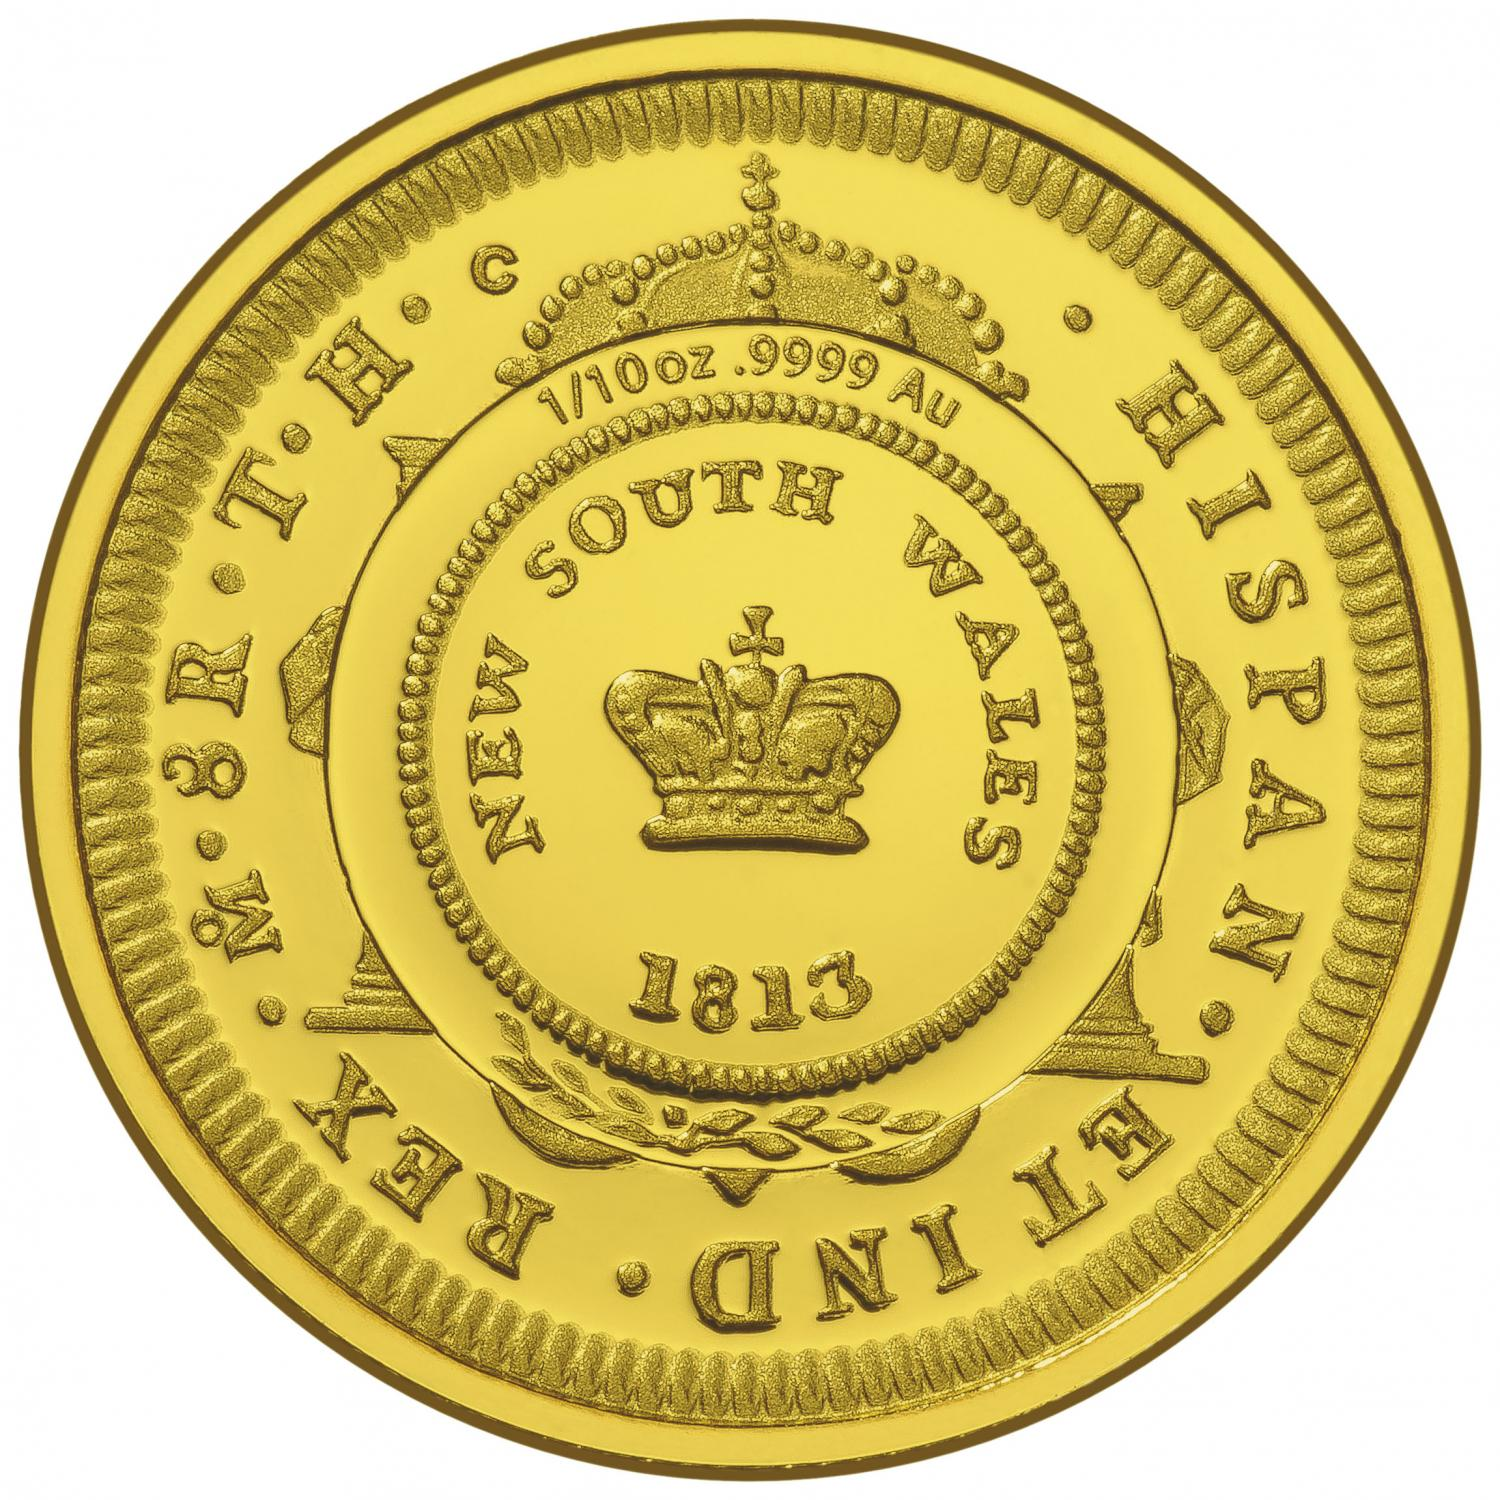 Thumbnail for 2013 Bicentenary of the Holy Dollar & Dump $10 Gold Proof Coin